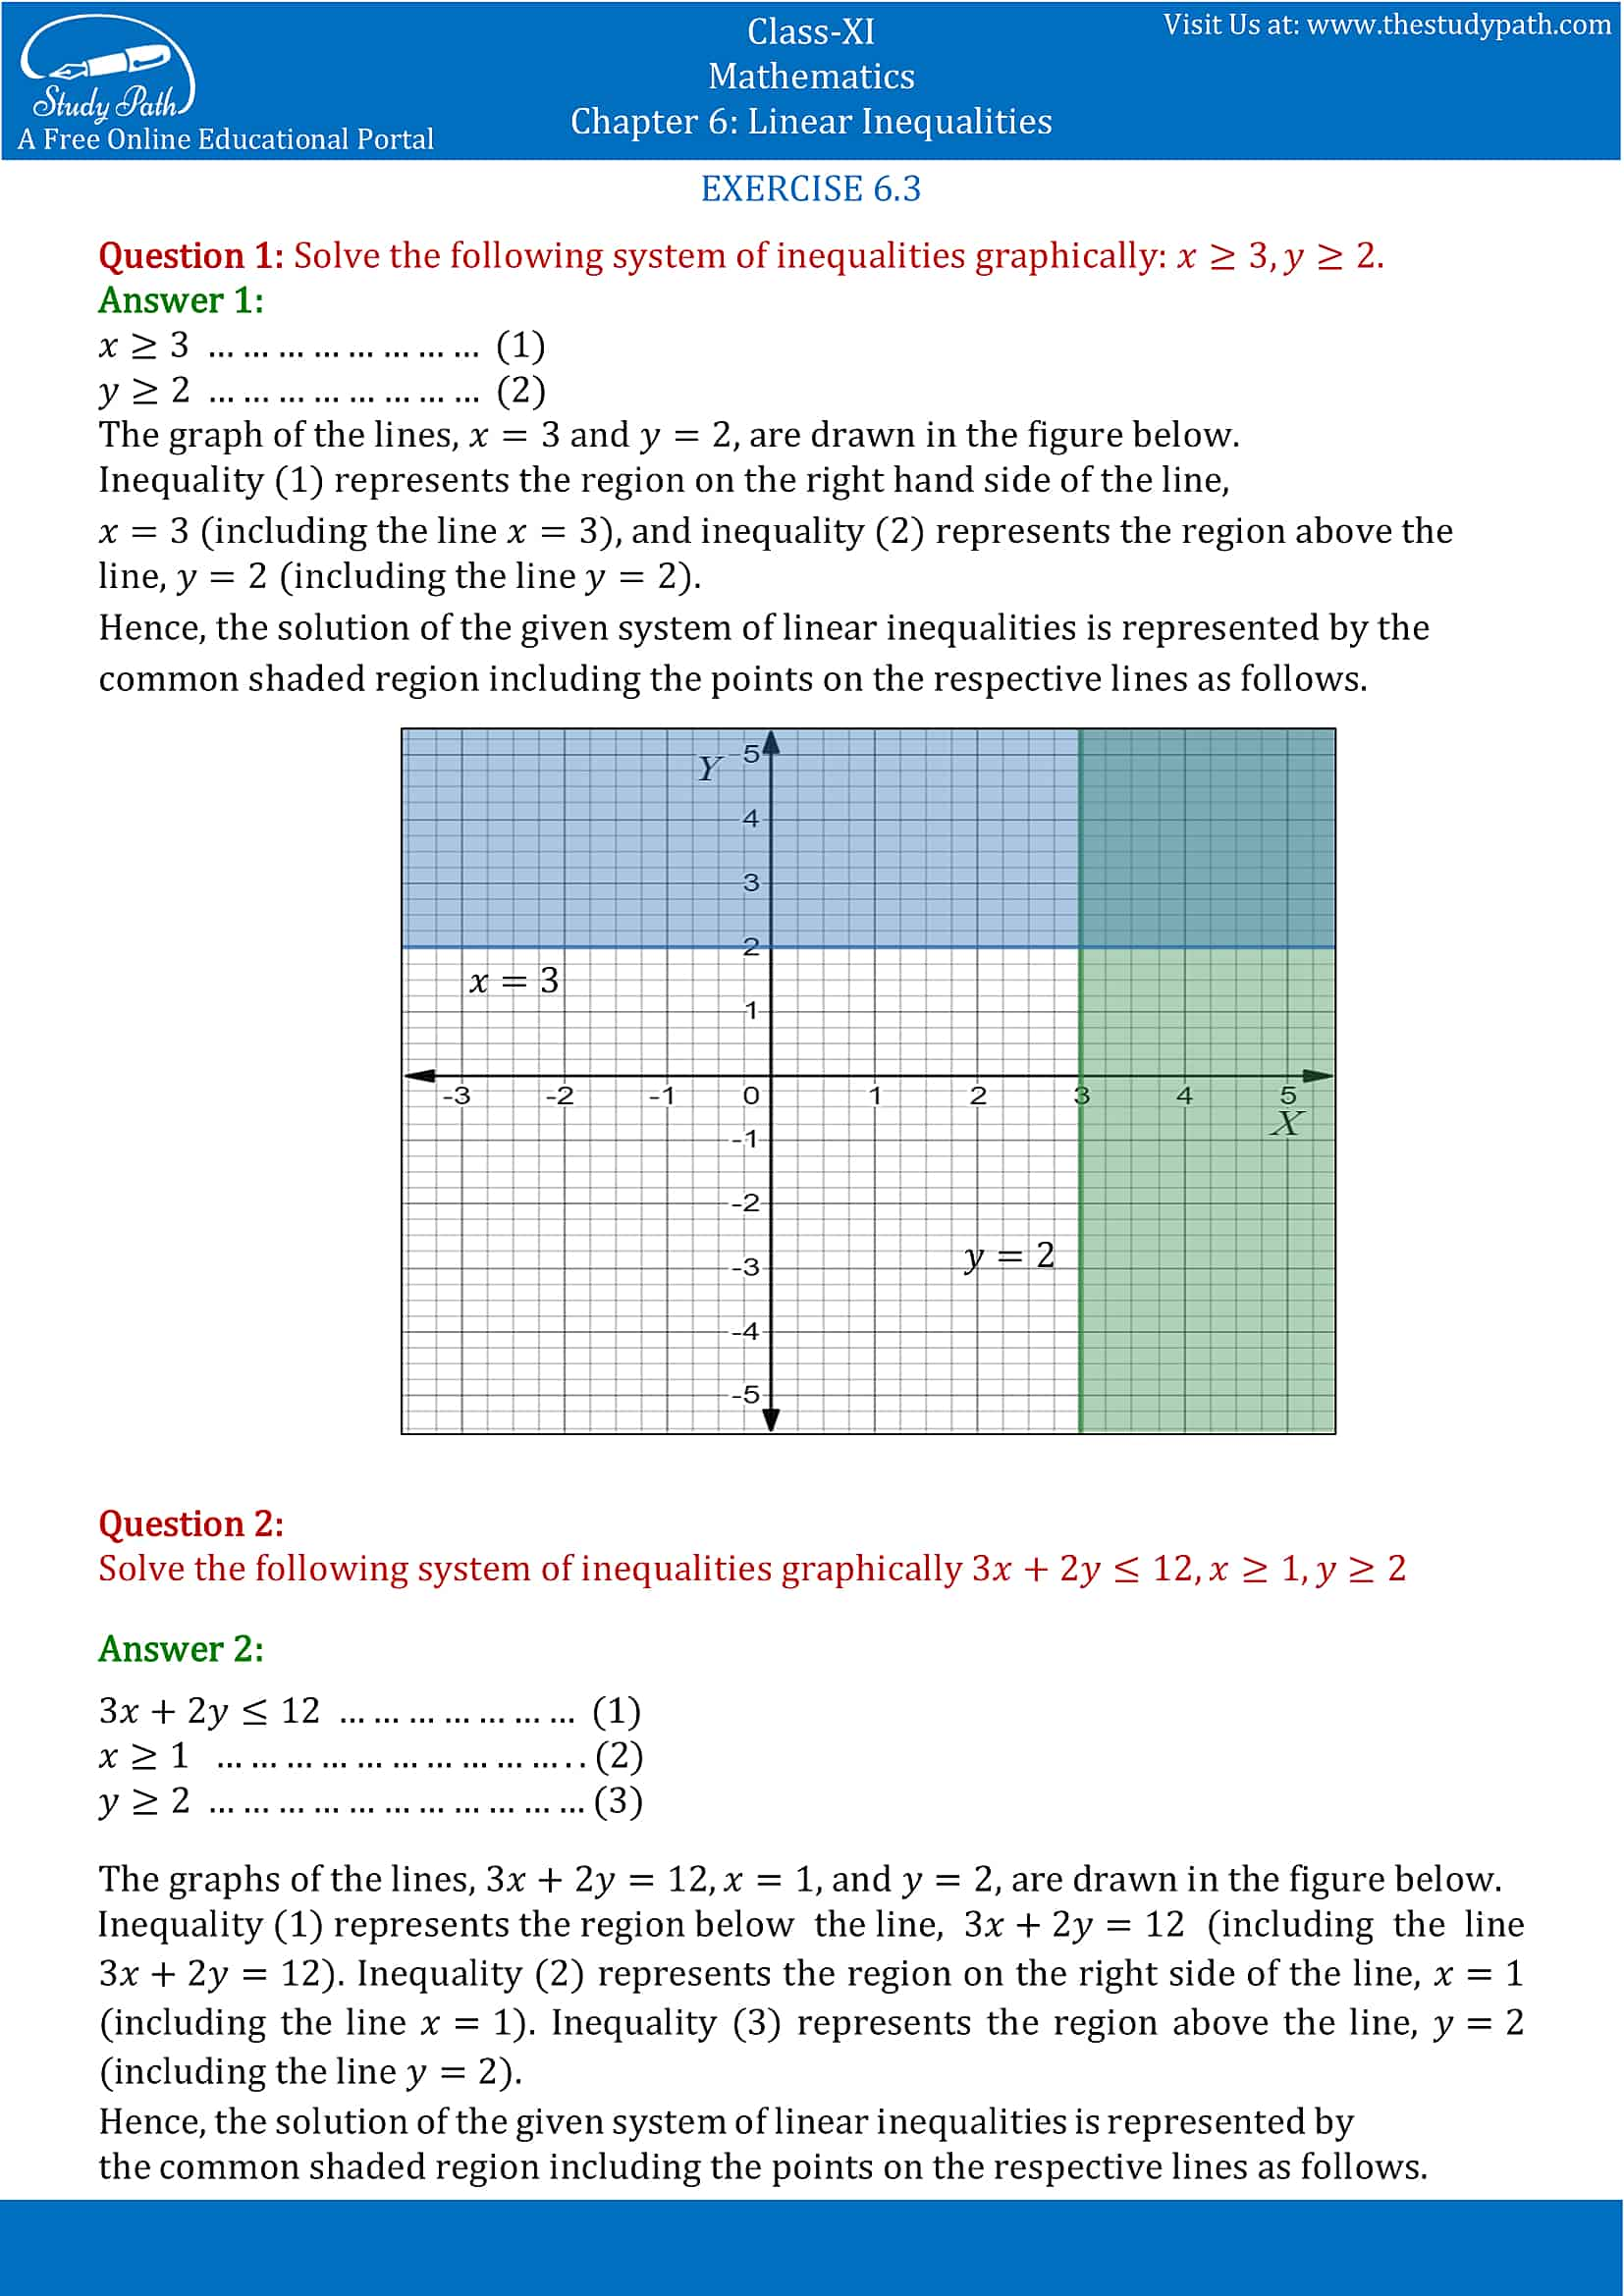 NCERT Solutions for Class 11 Maths chapter 6 Linear Inequalities Exercise 6.3 Part-1